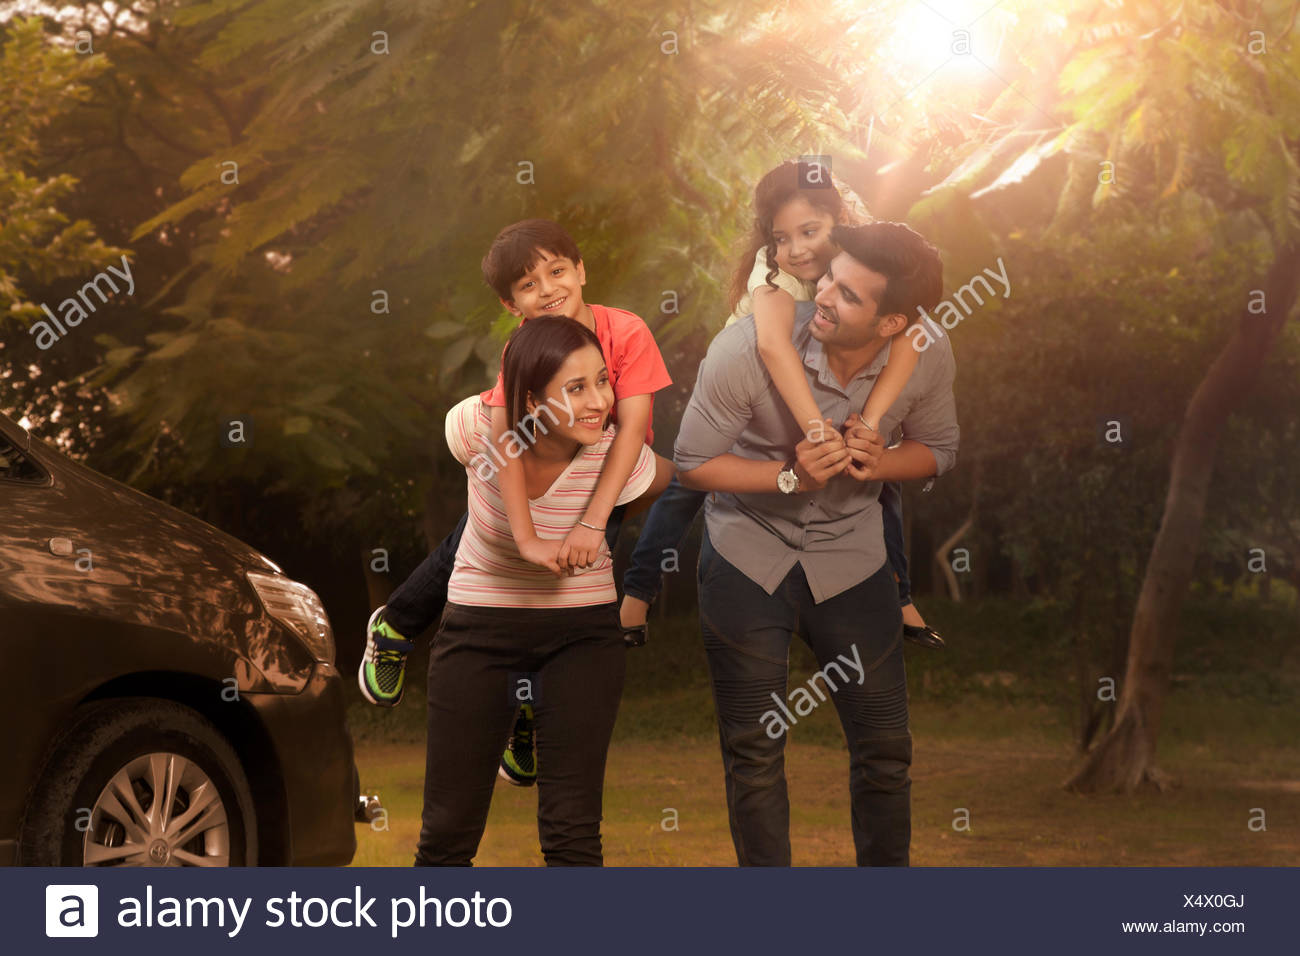 Mother and father carrying children on back in park Stock Photo